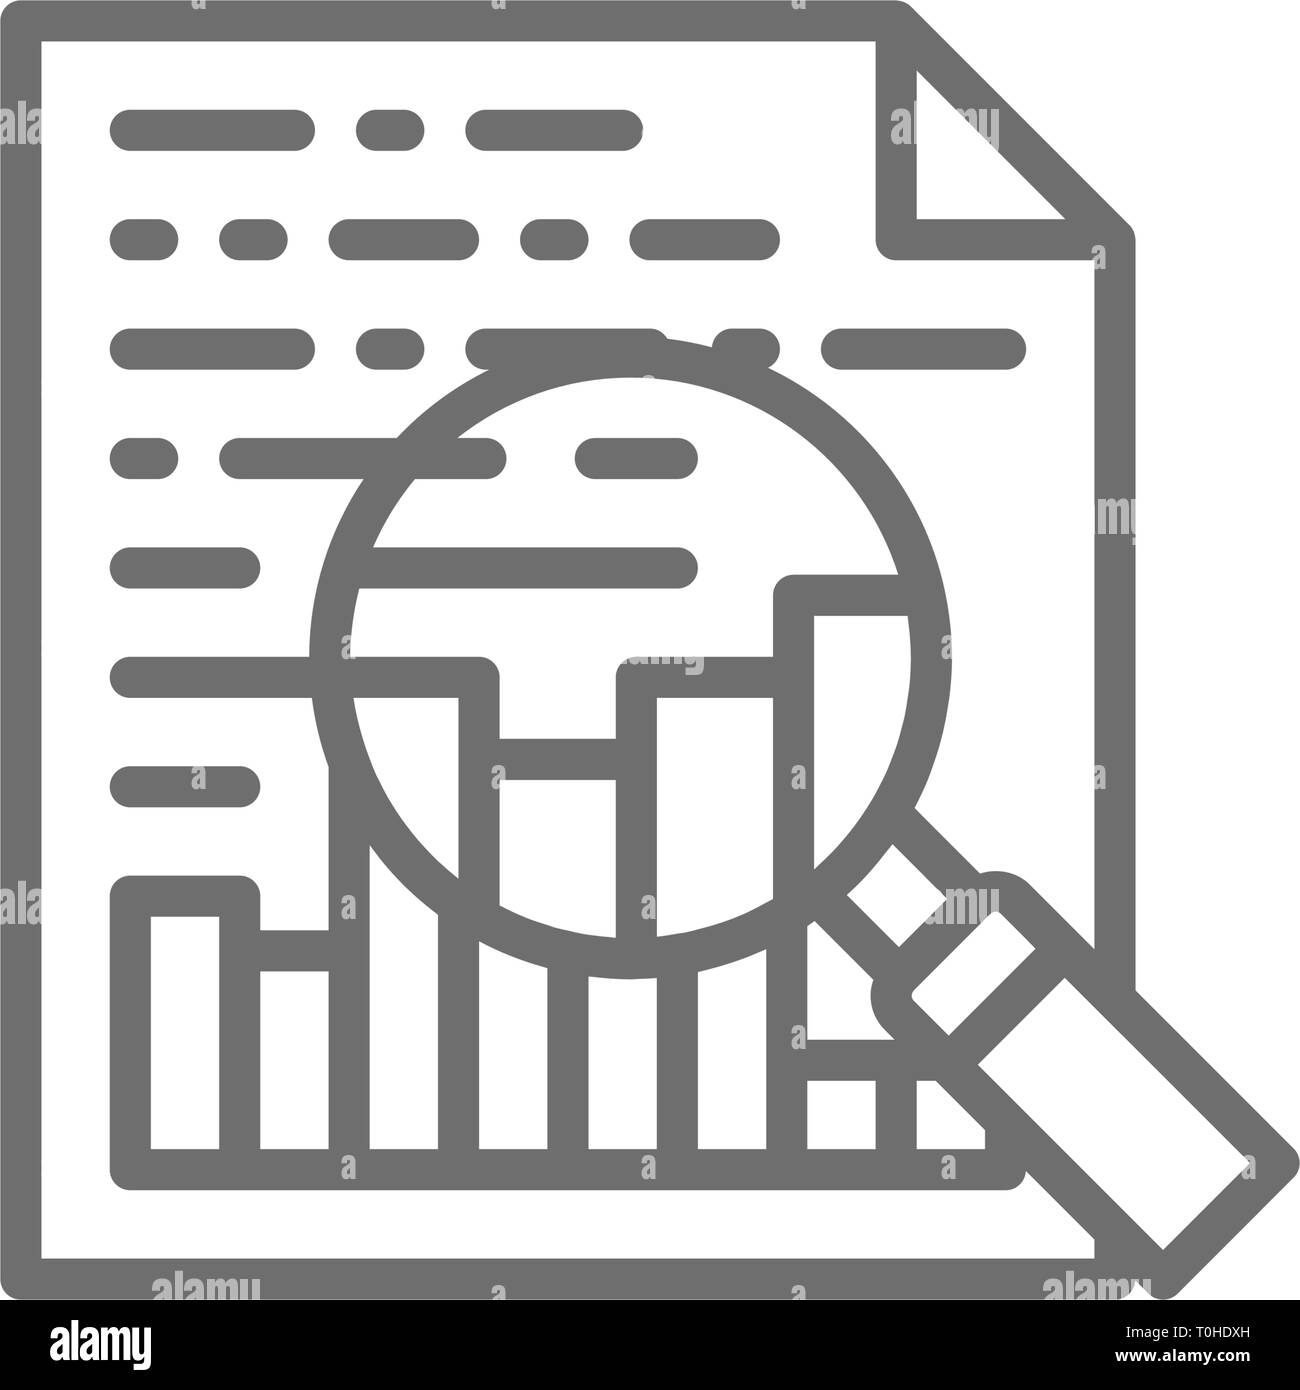 Charts and graphs, company presentation, document with statistic and magnifying glass line icon. - Stock Image